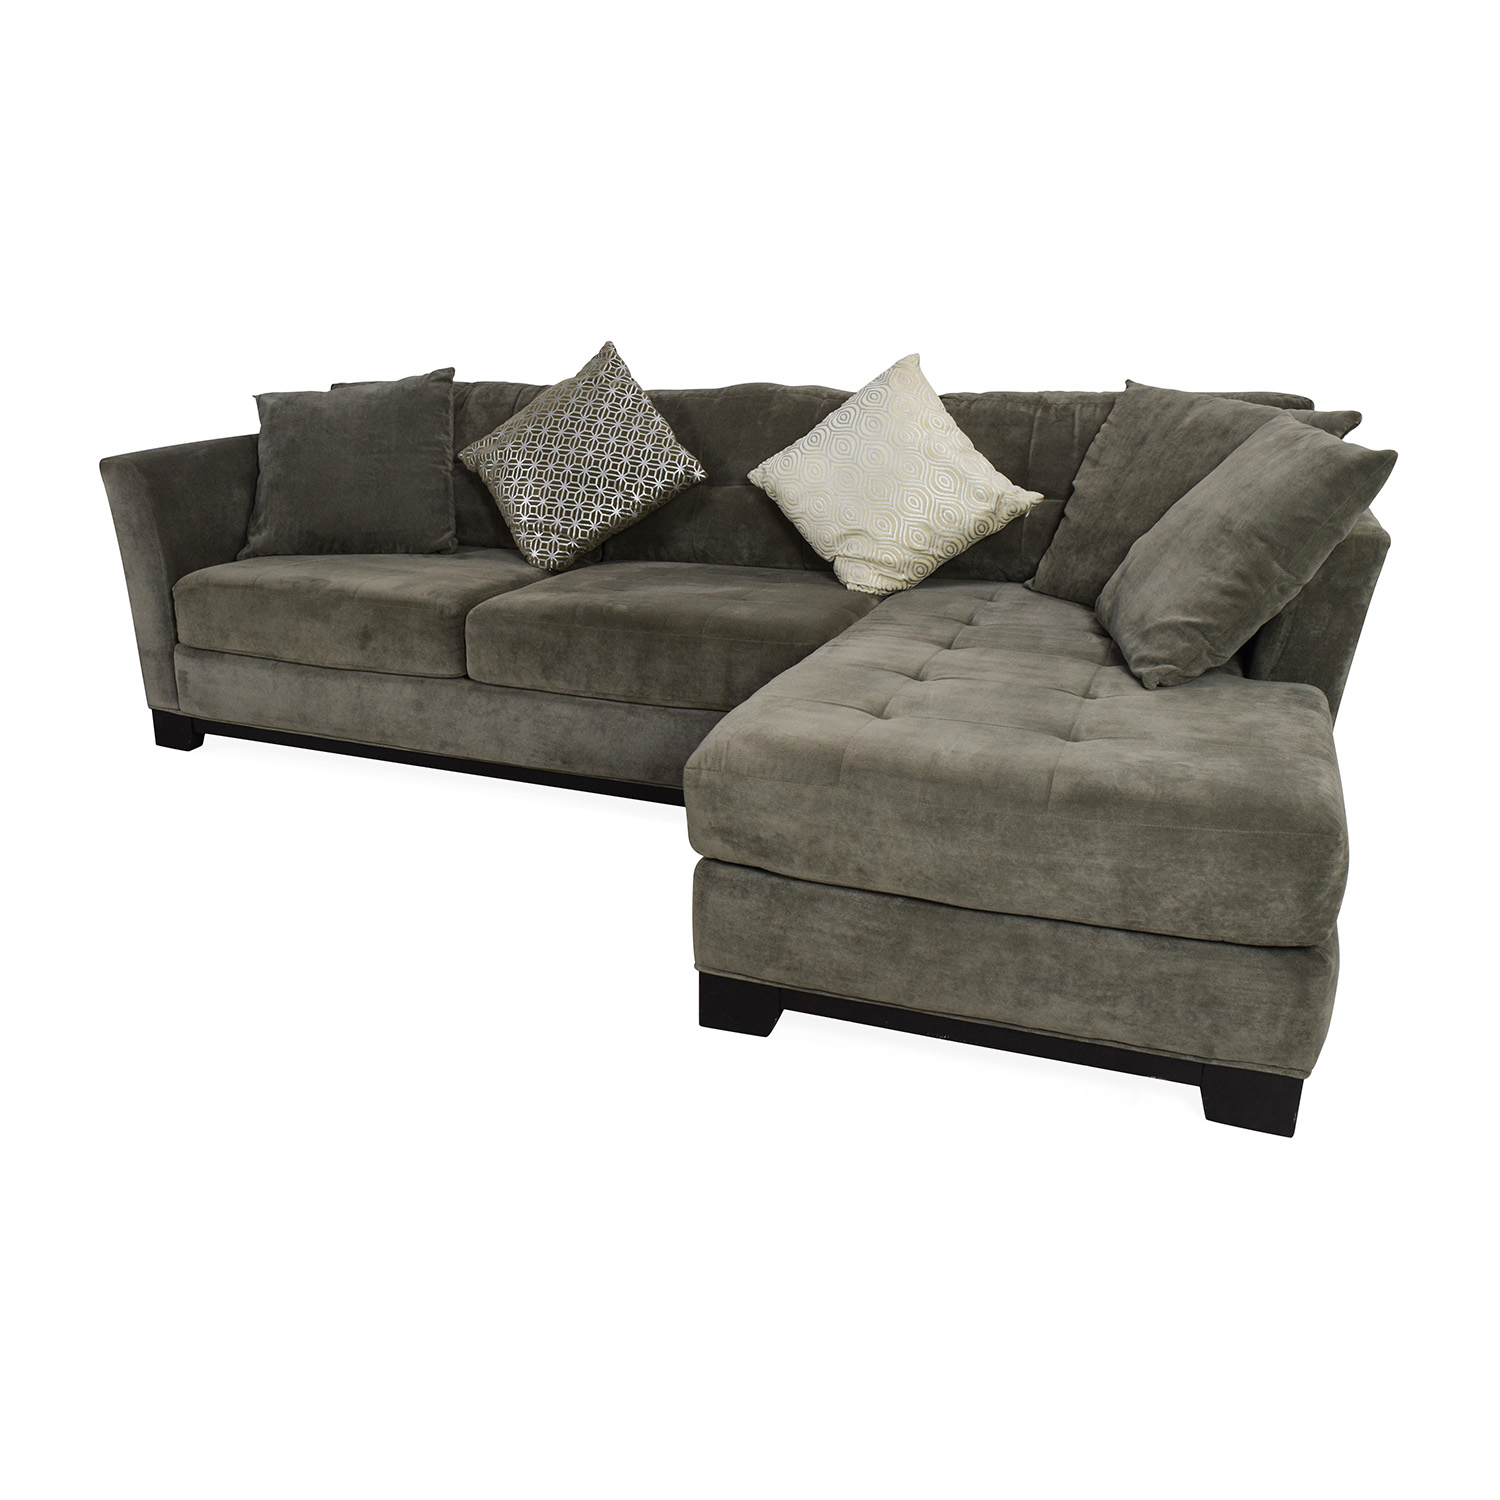 Enjoyable 50 Off Macys Macys Gray Sectional Couch With Chaise Sofas Creativecarmelina Interior Chair Design Creativecarmelinacom